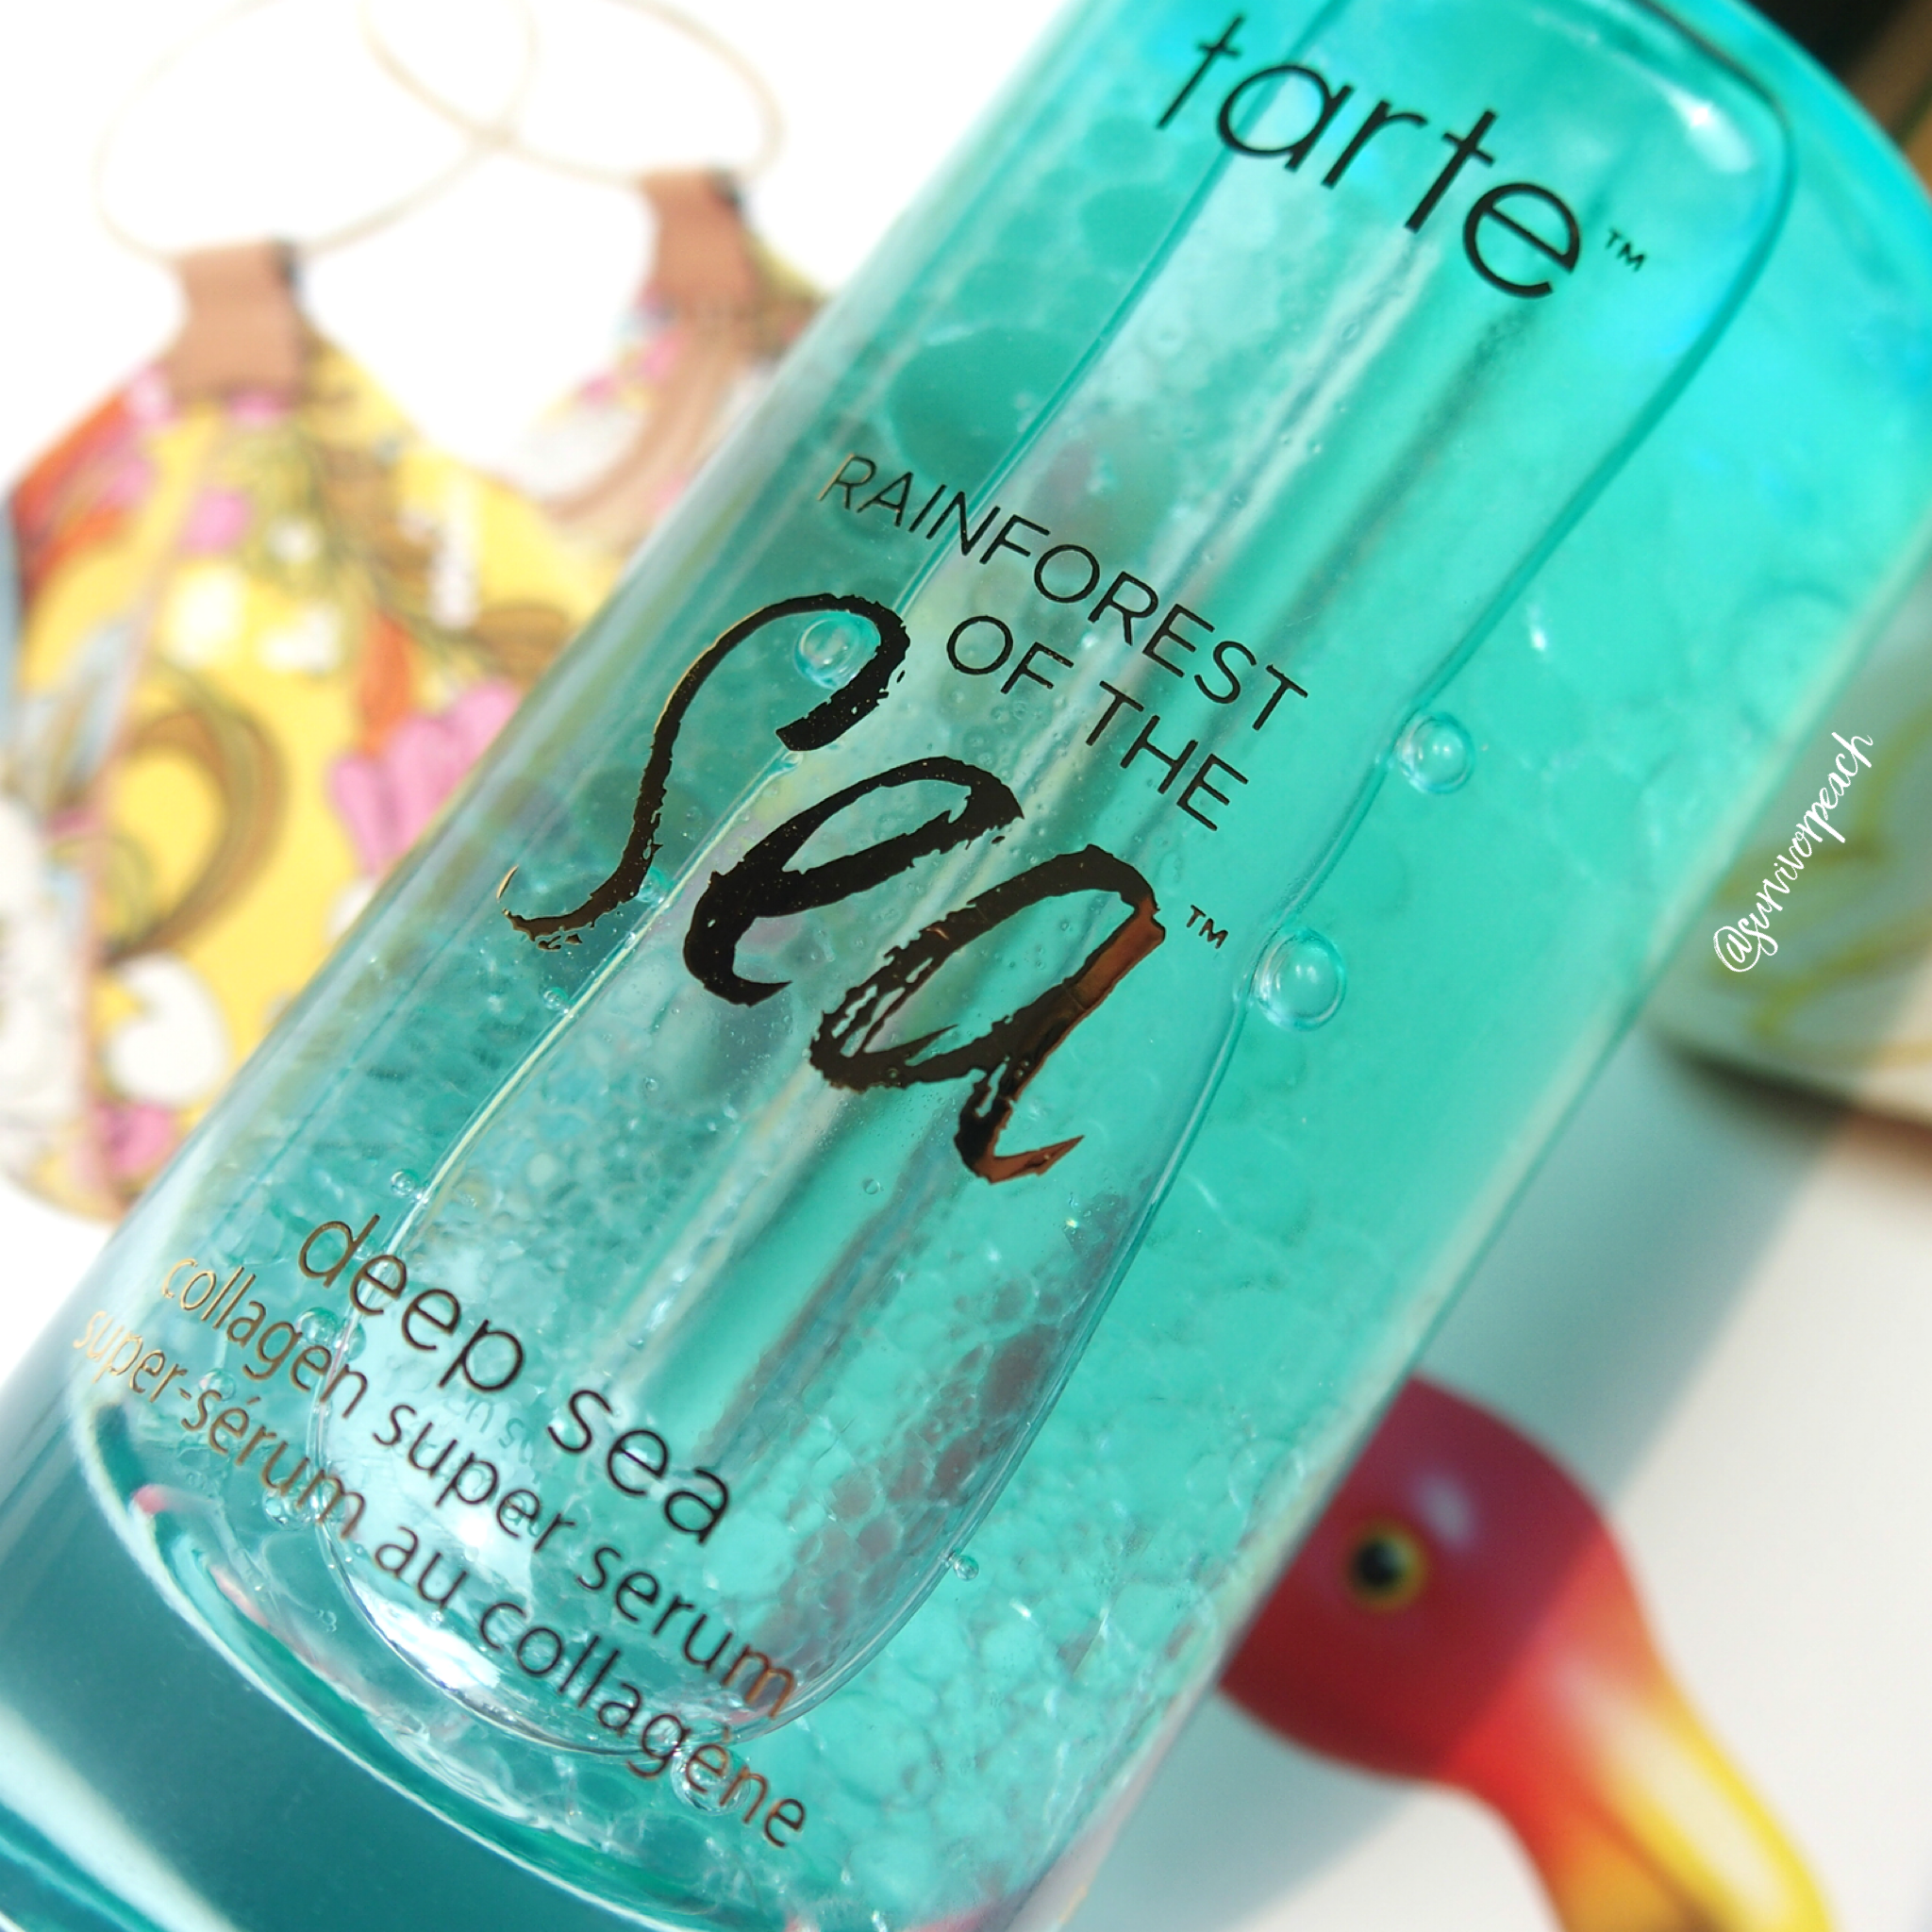 Tarte Rainforest of the Sea™ deep sea collagen super serum